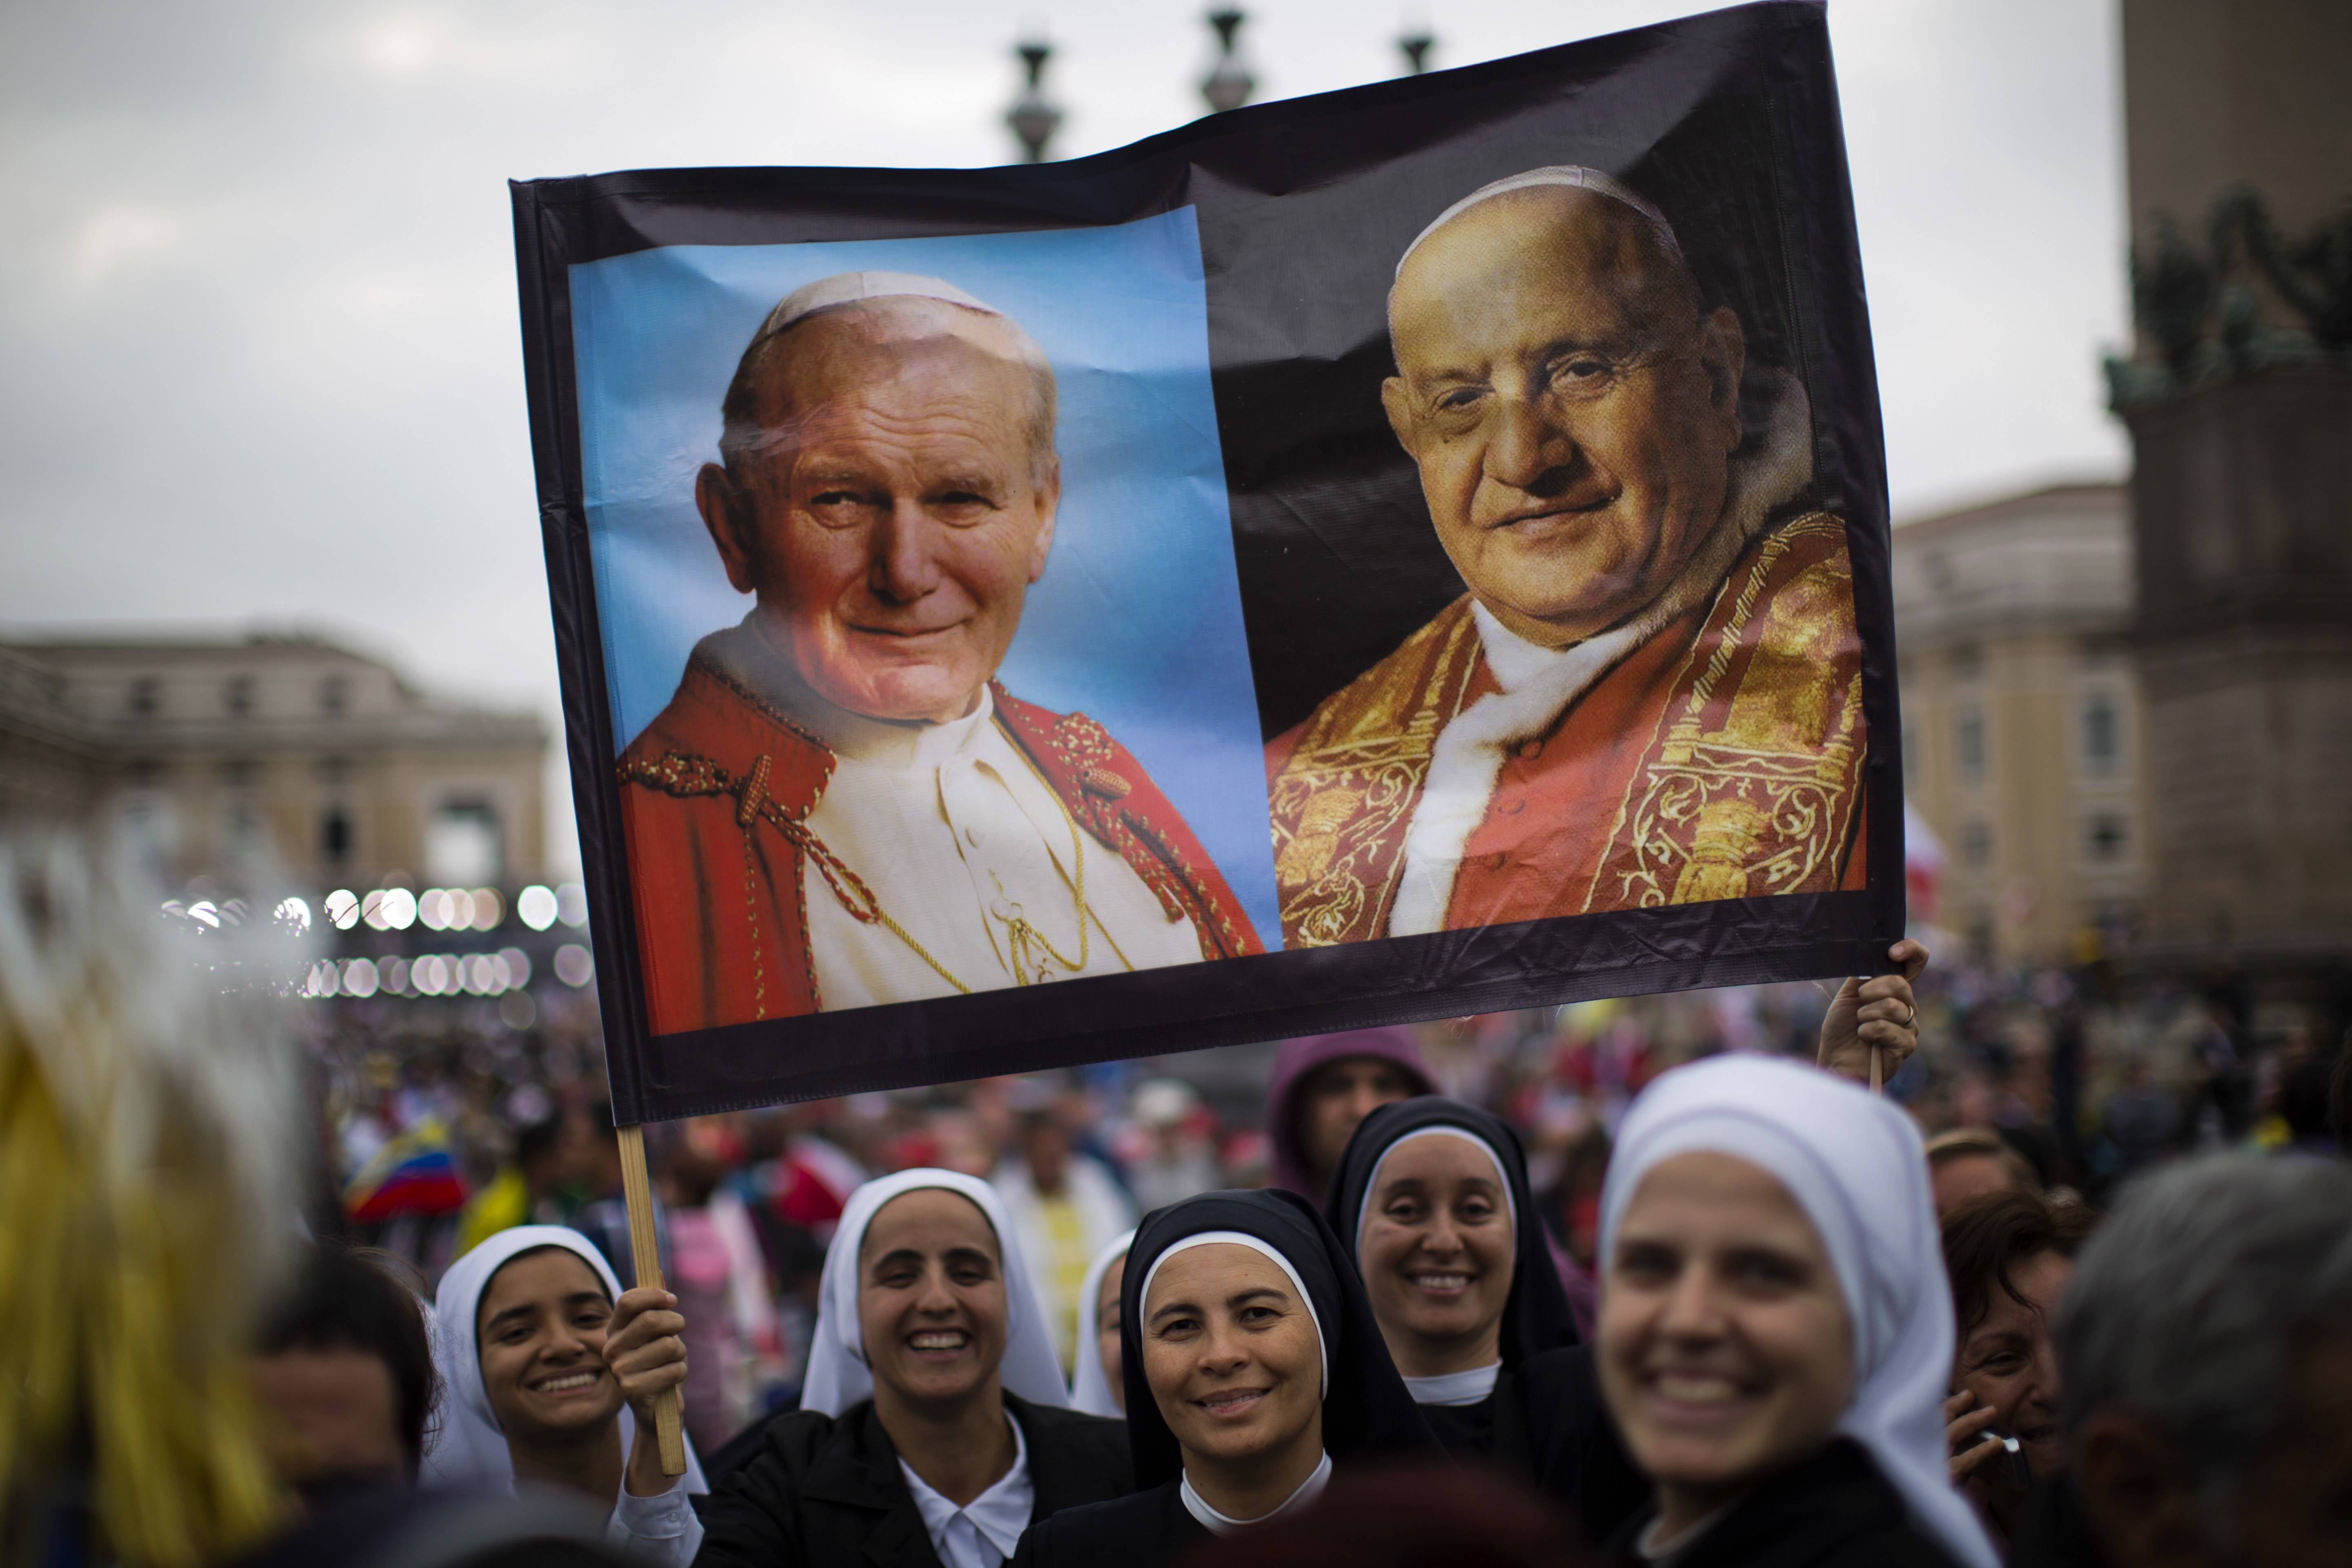 Nuns hold a poster with portraits of Pope John Paul II, left, and John XXIII, in St. Peter's Square at the Vatican Sunday. Pope Francis has declared his two predecessors John XXIII and John Paul II saints in an unprecedented canonization ceremony made even more historic by the presence of retired Pope Benedict XVI.